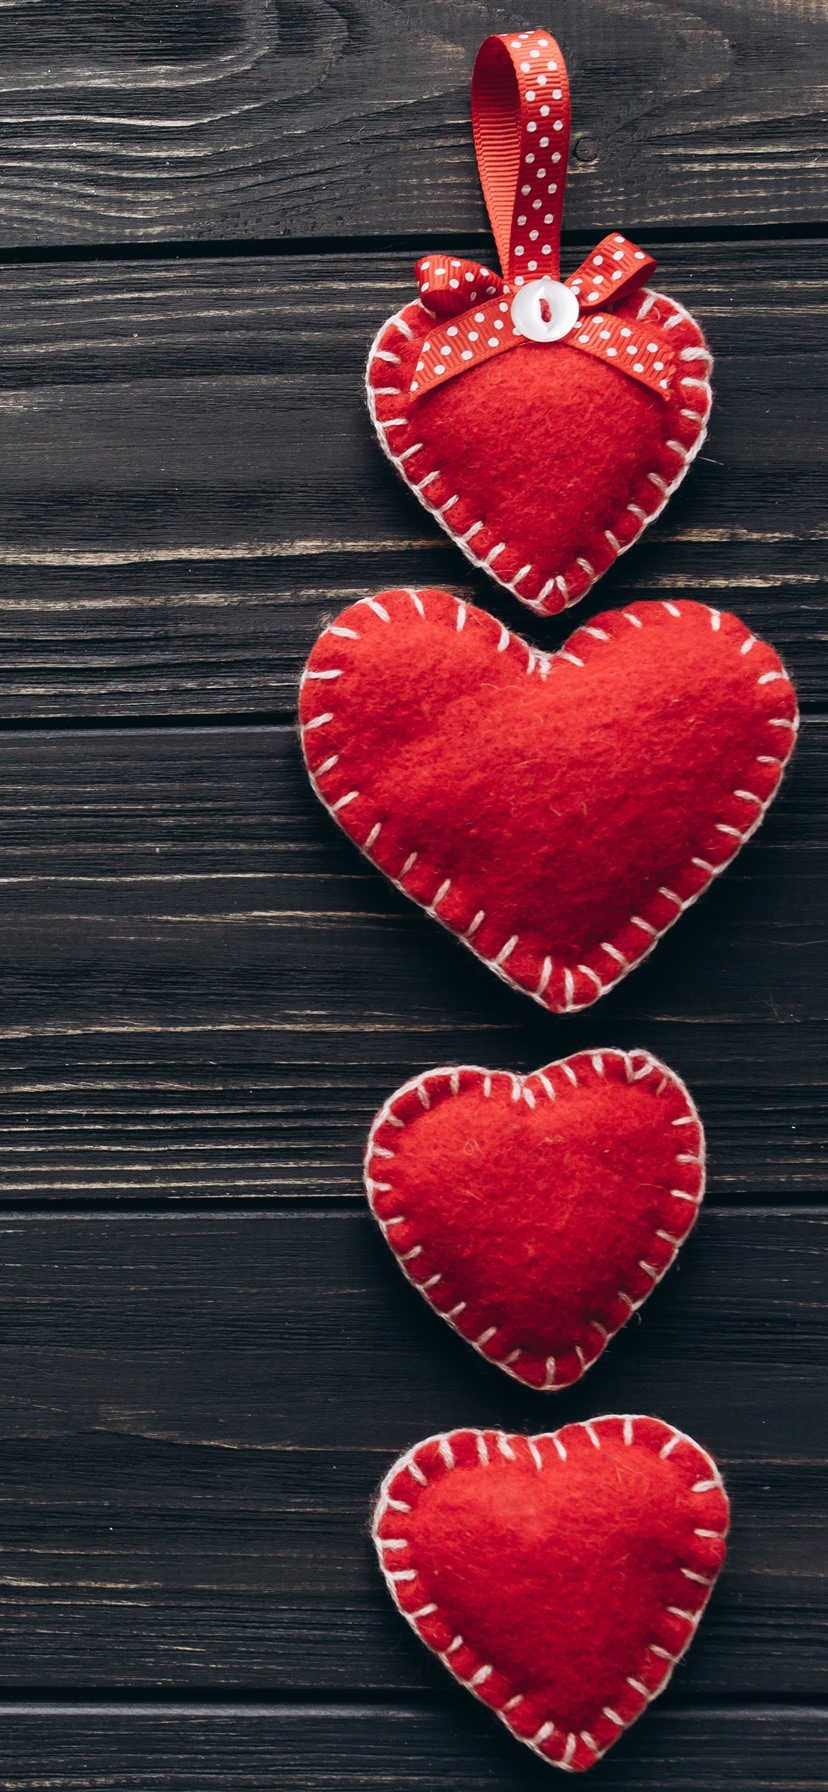 Red Love Hearts Decoration Wood Board 1242x2688 Iphone 11 Pro Xs Max Wallpaper Background Picture Image